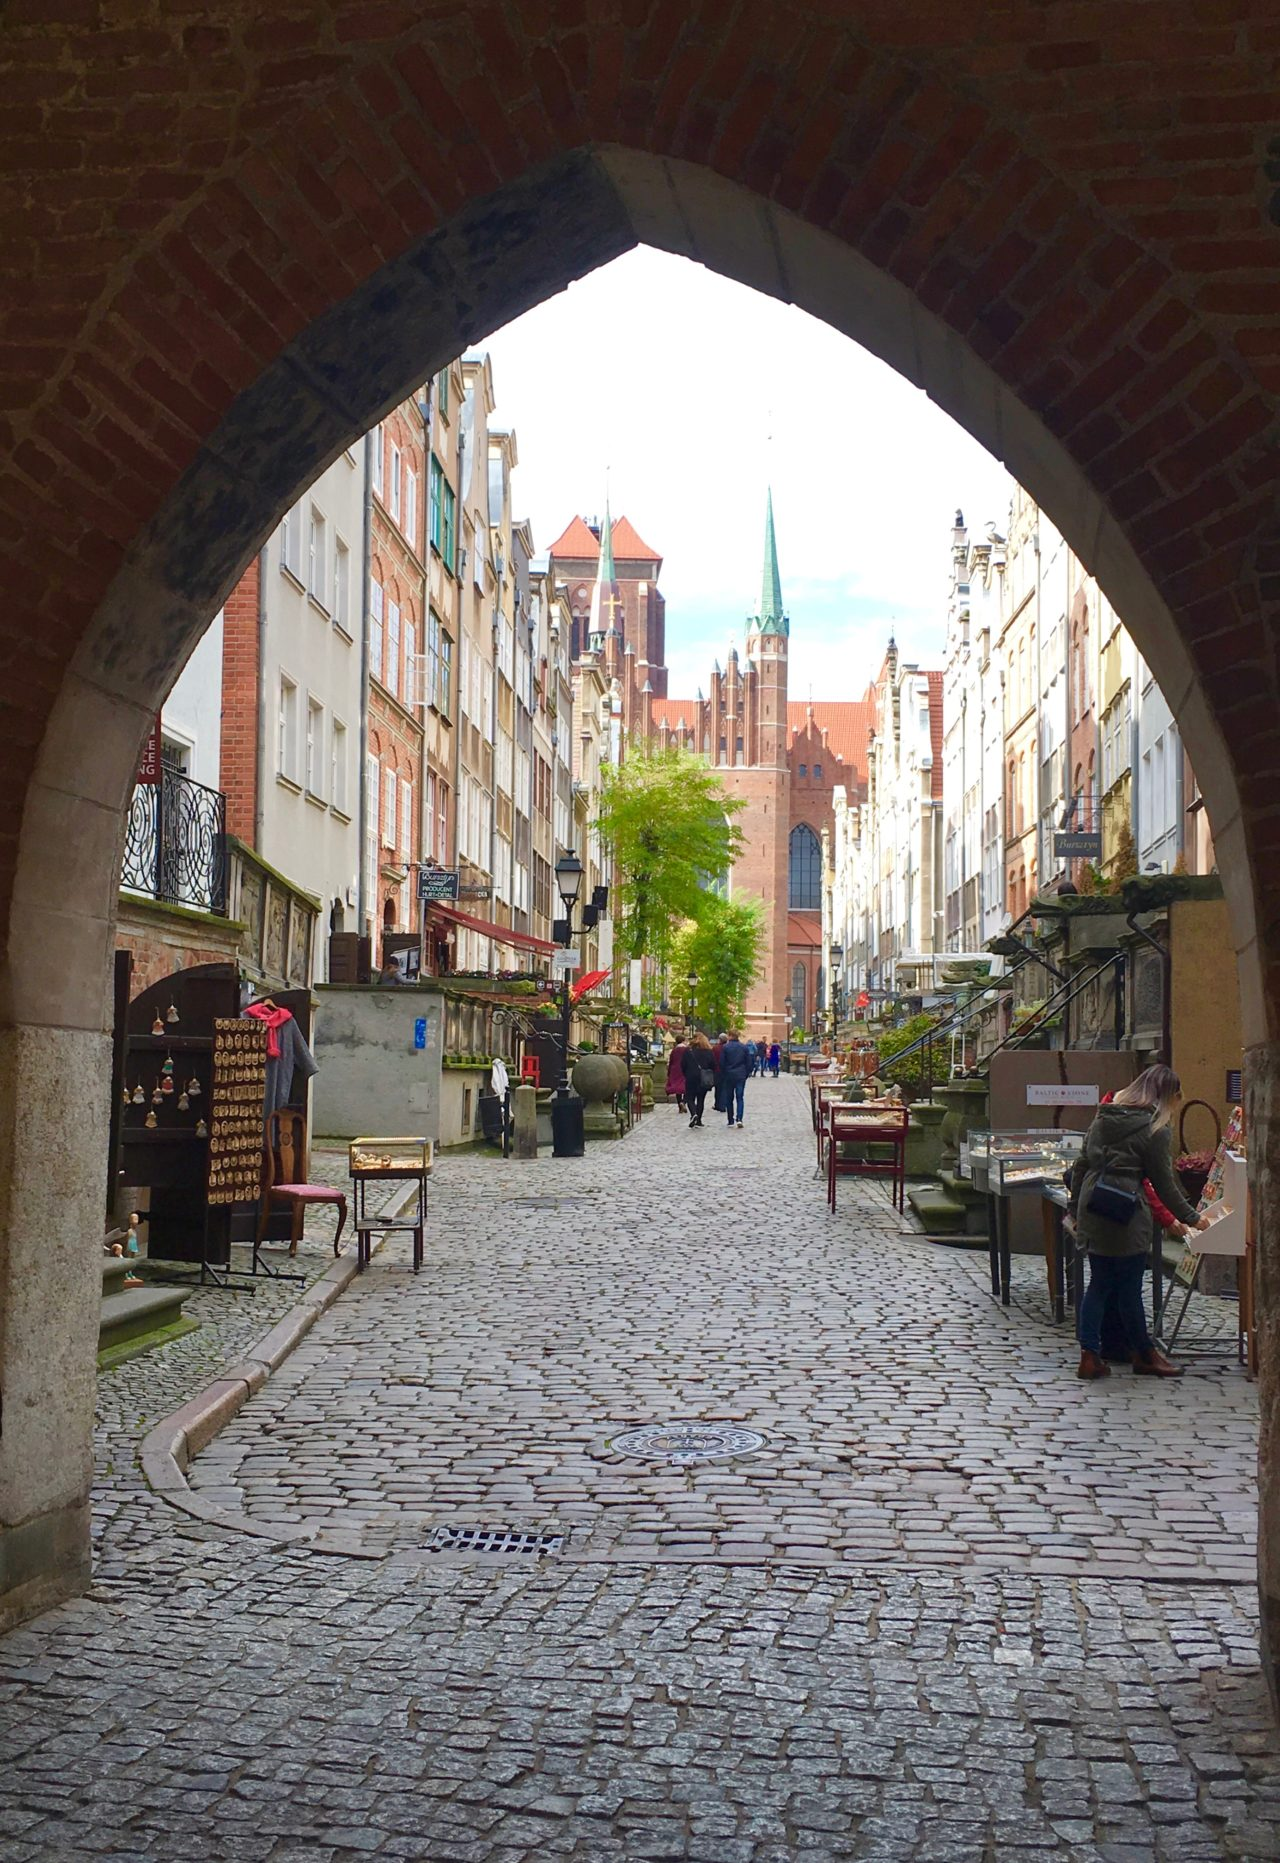 Through t he arch - the beautiful streets of Gdansk Old Town